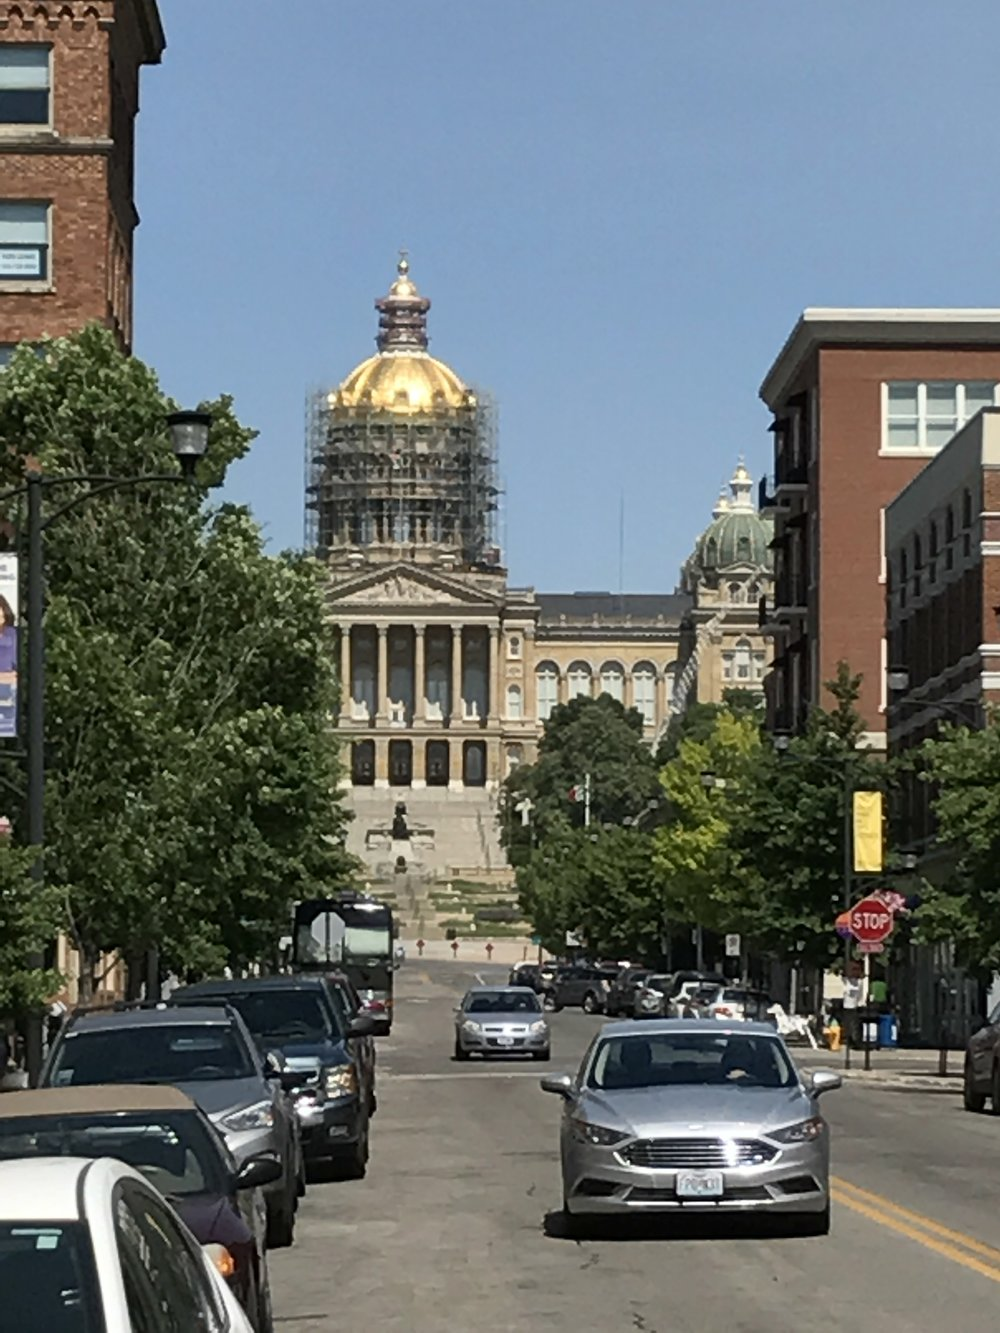 East Village view of the Capitol building